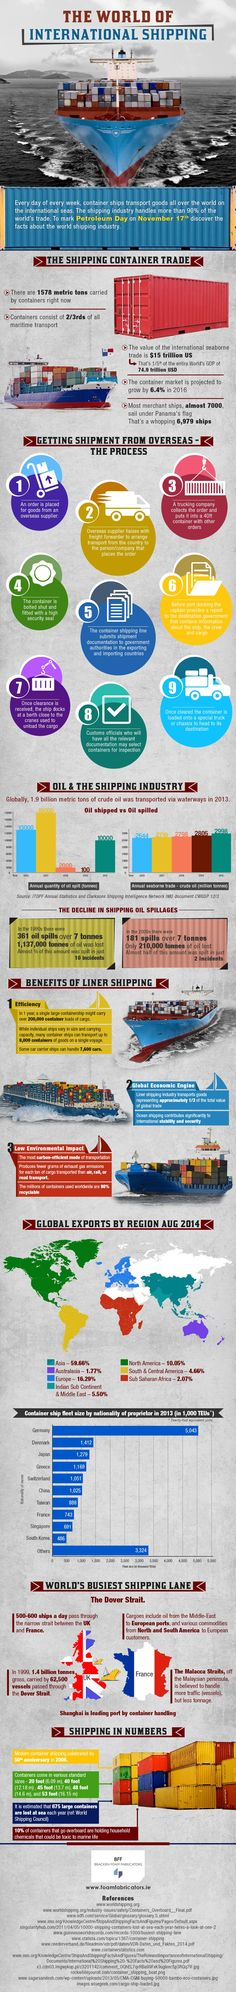 The World of International Shipping - Do you fancy an infographic? There are a lot of them online, but if you want your own please visit http://www.linfografico.com/prezzi/ Online girano molte infografiche, se ne vuoi realizzare una tutta tua visita http://www.linfografico.com/prezzi/